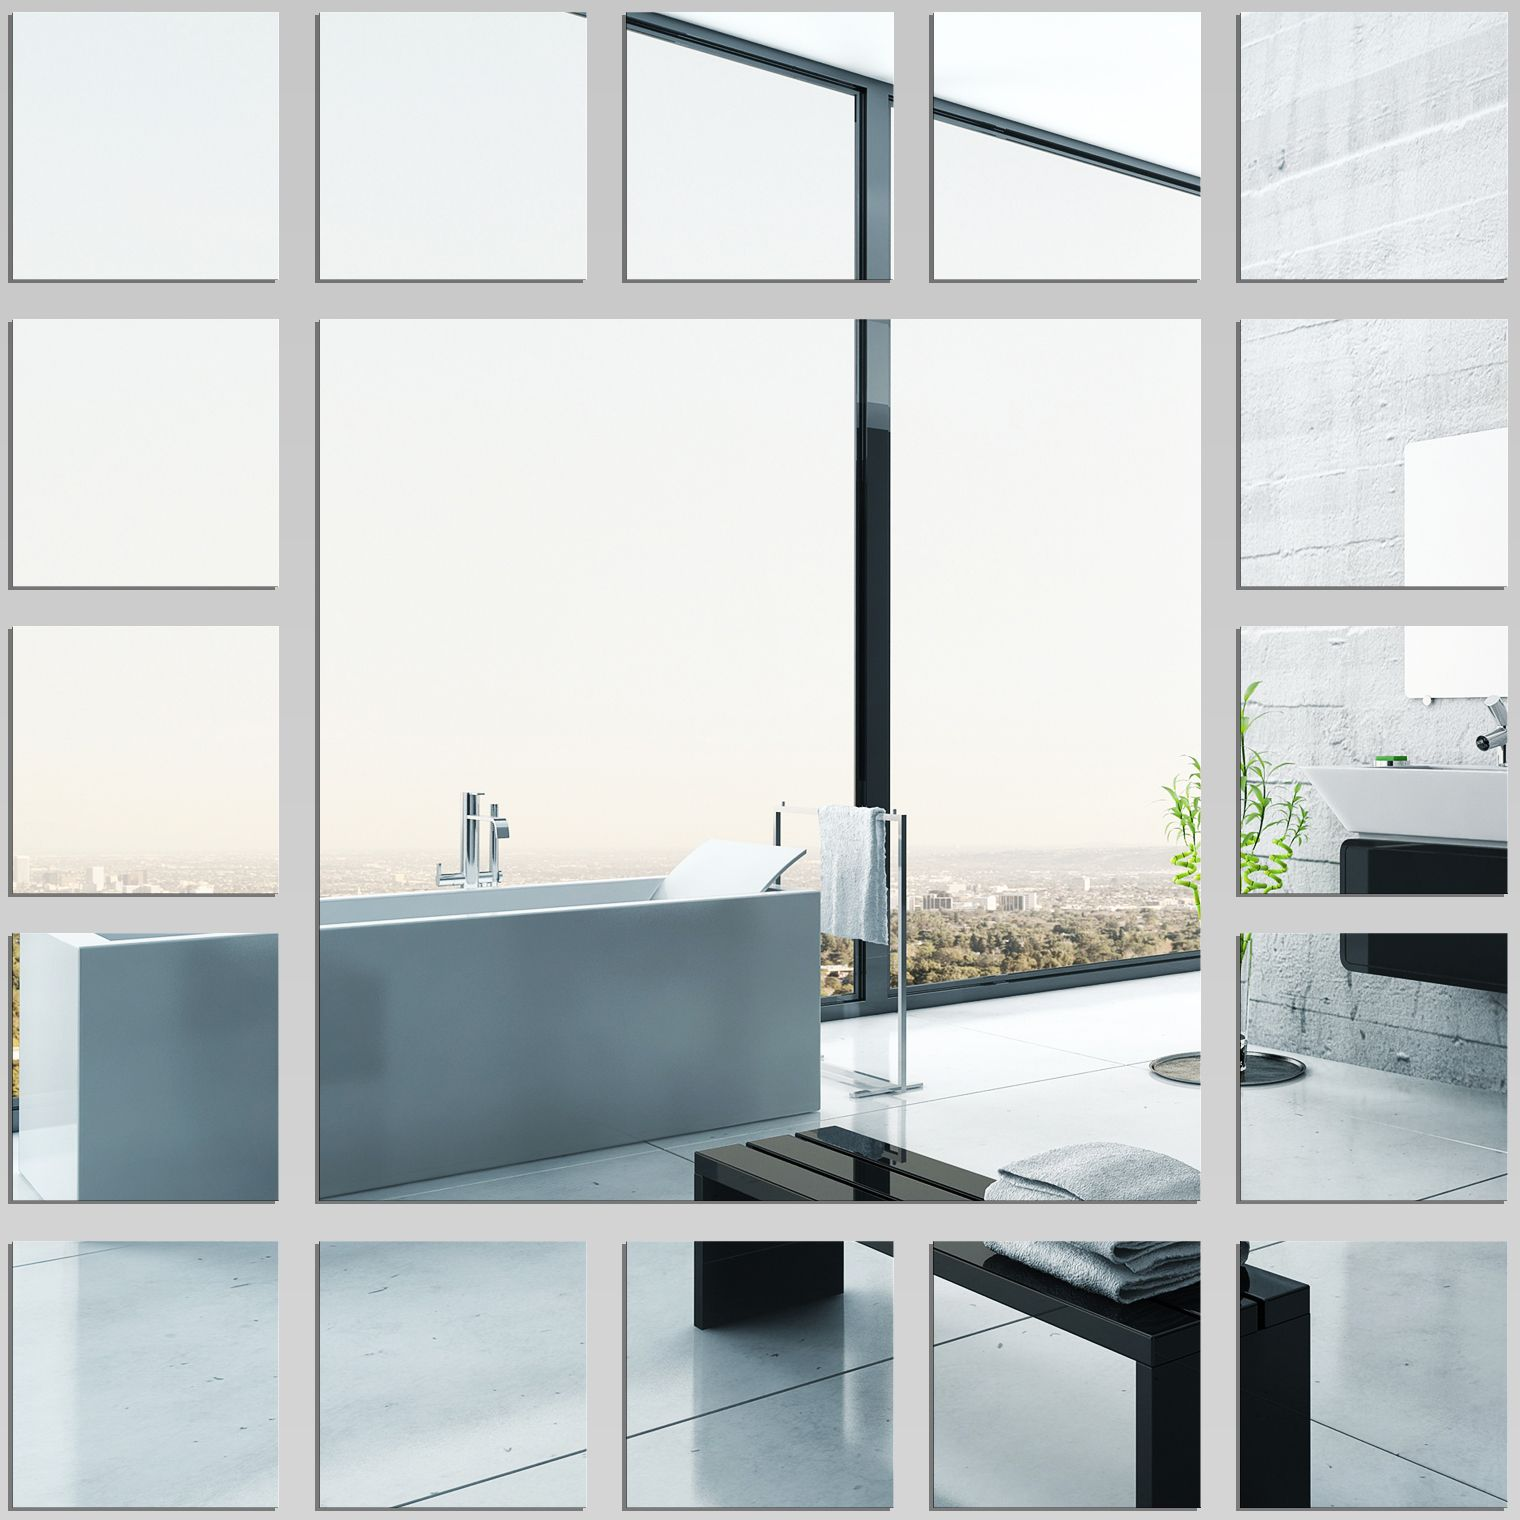 Square - Decorative Mirrors Acrylic | Updating house ...